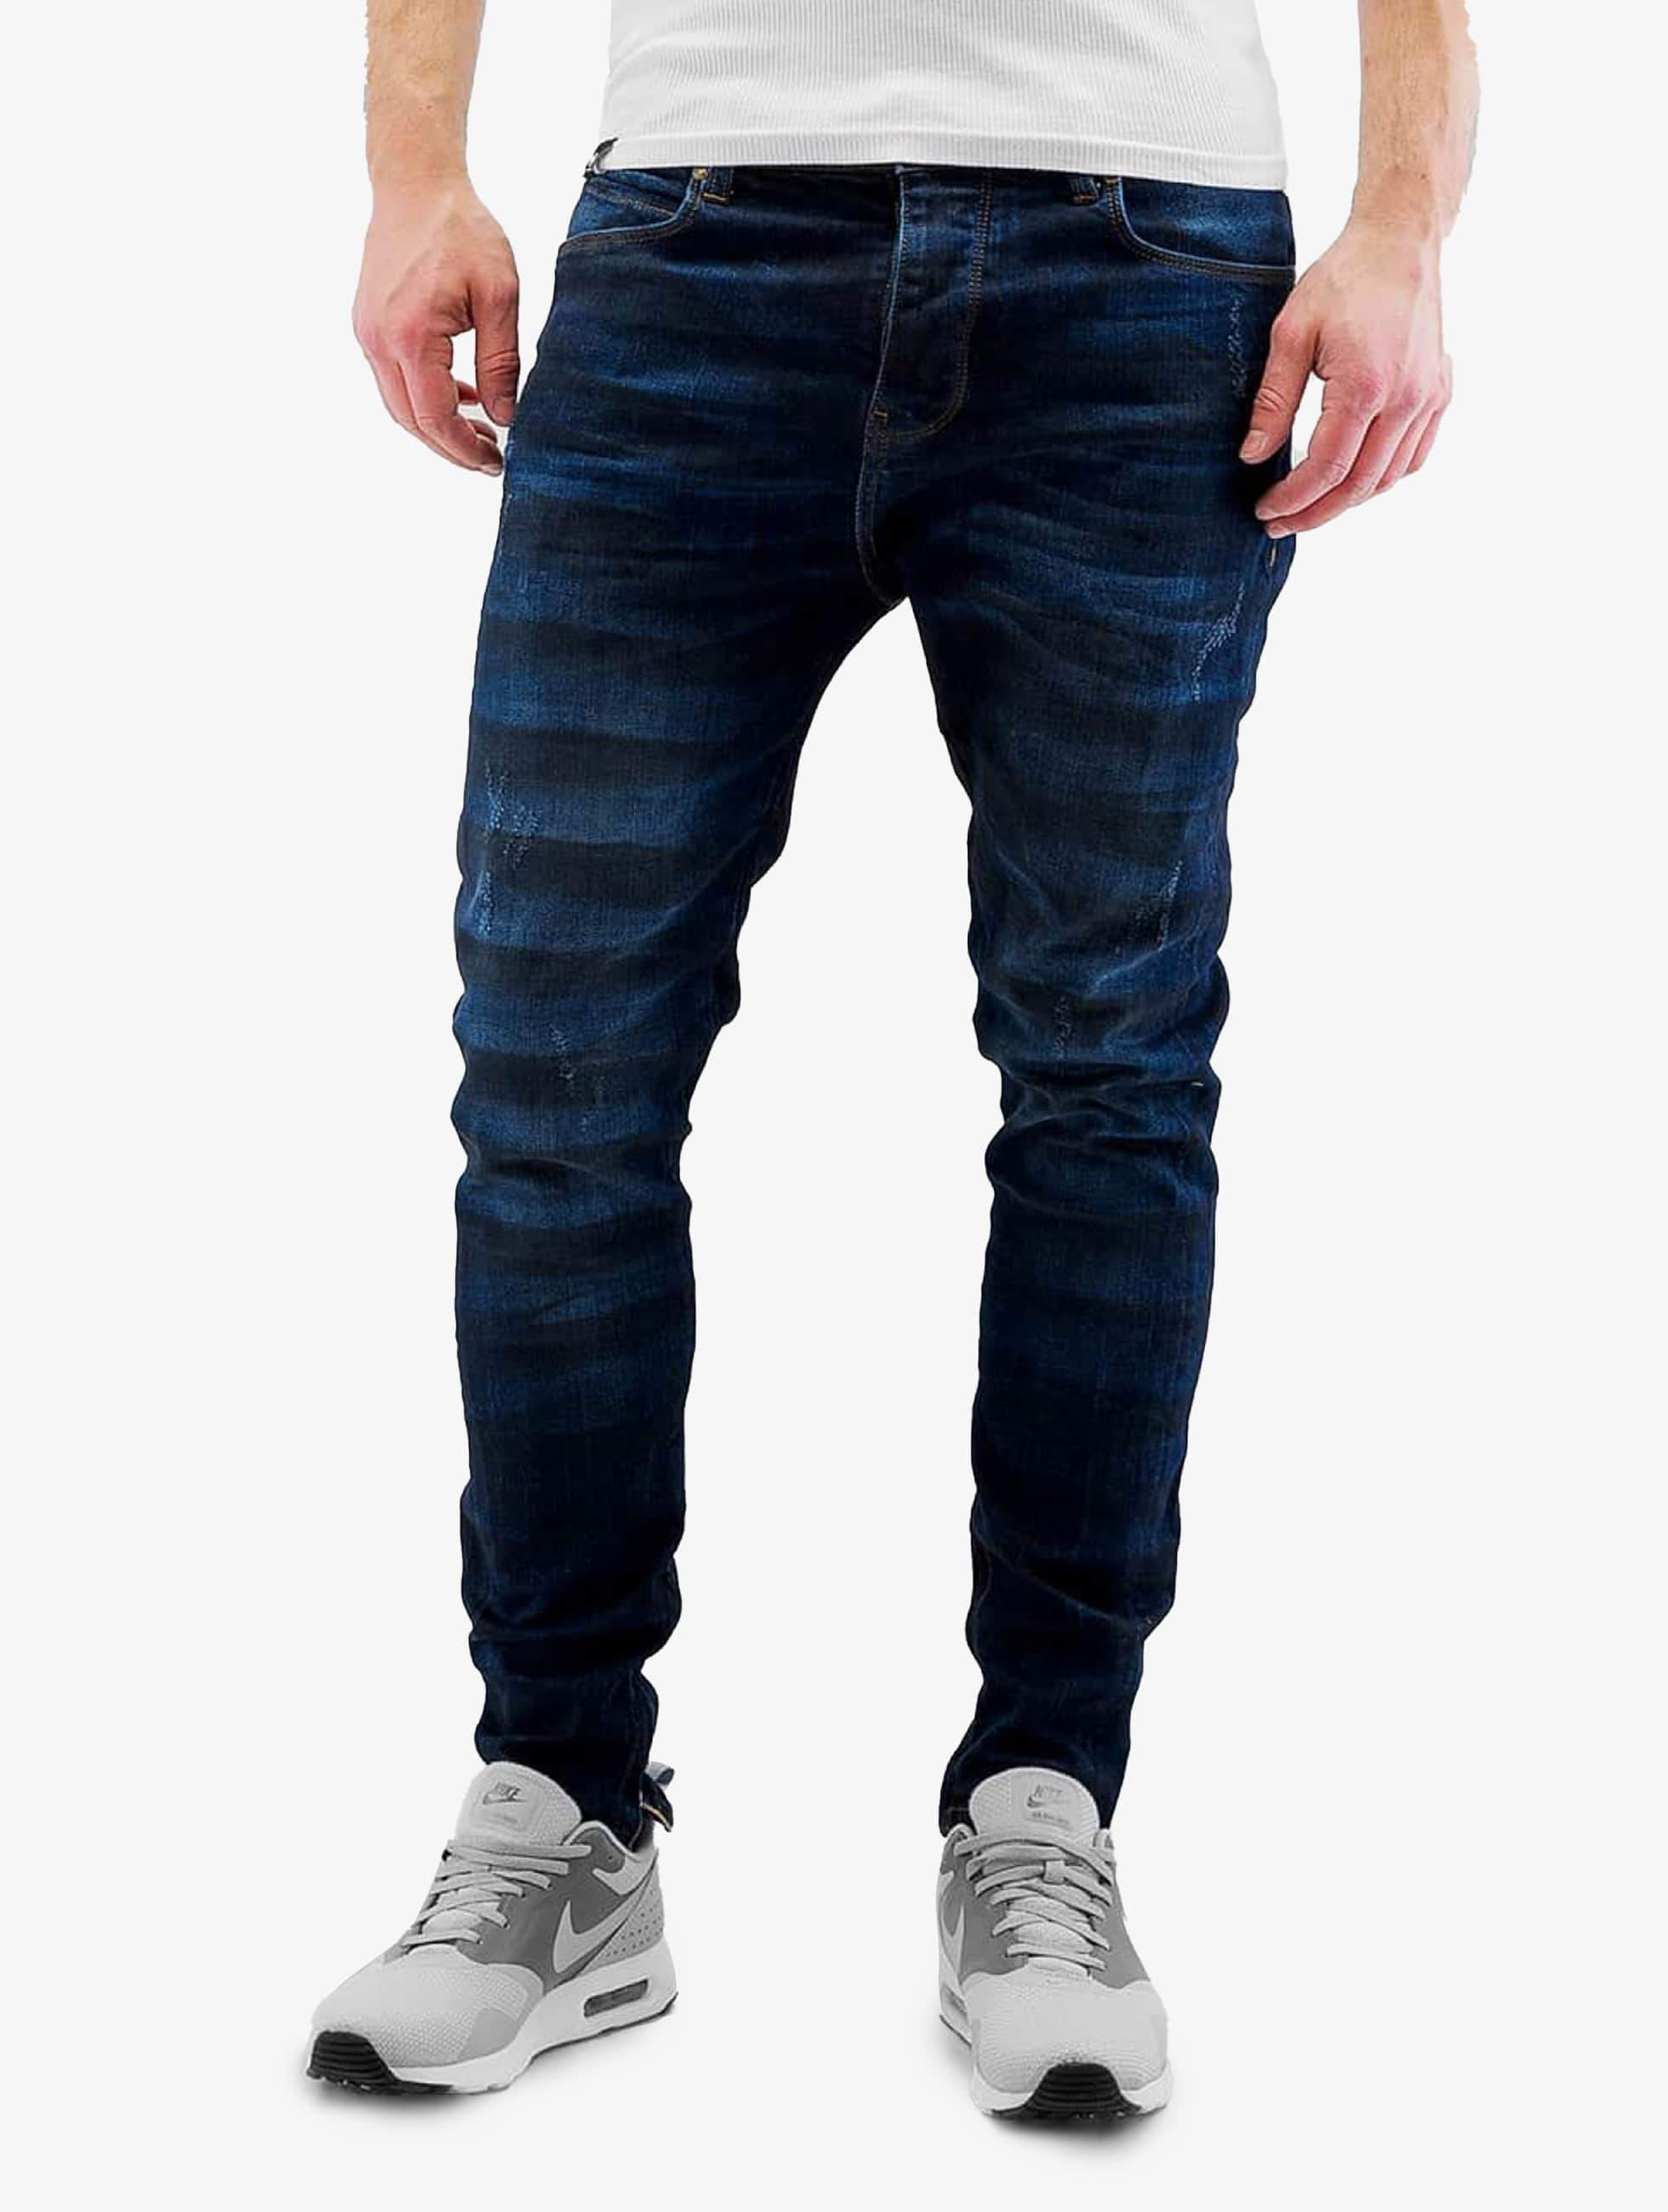 Bangastic / Slim Fit Jeans K125 in blue W 36